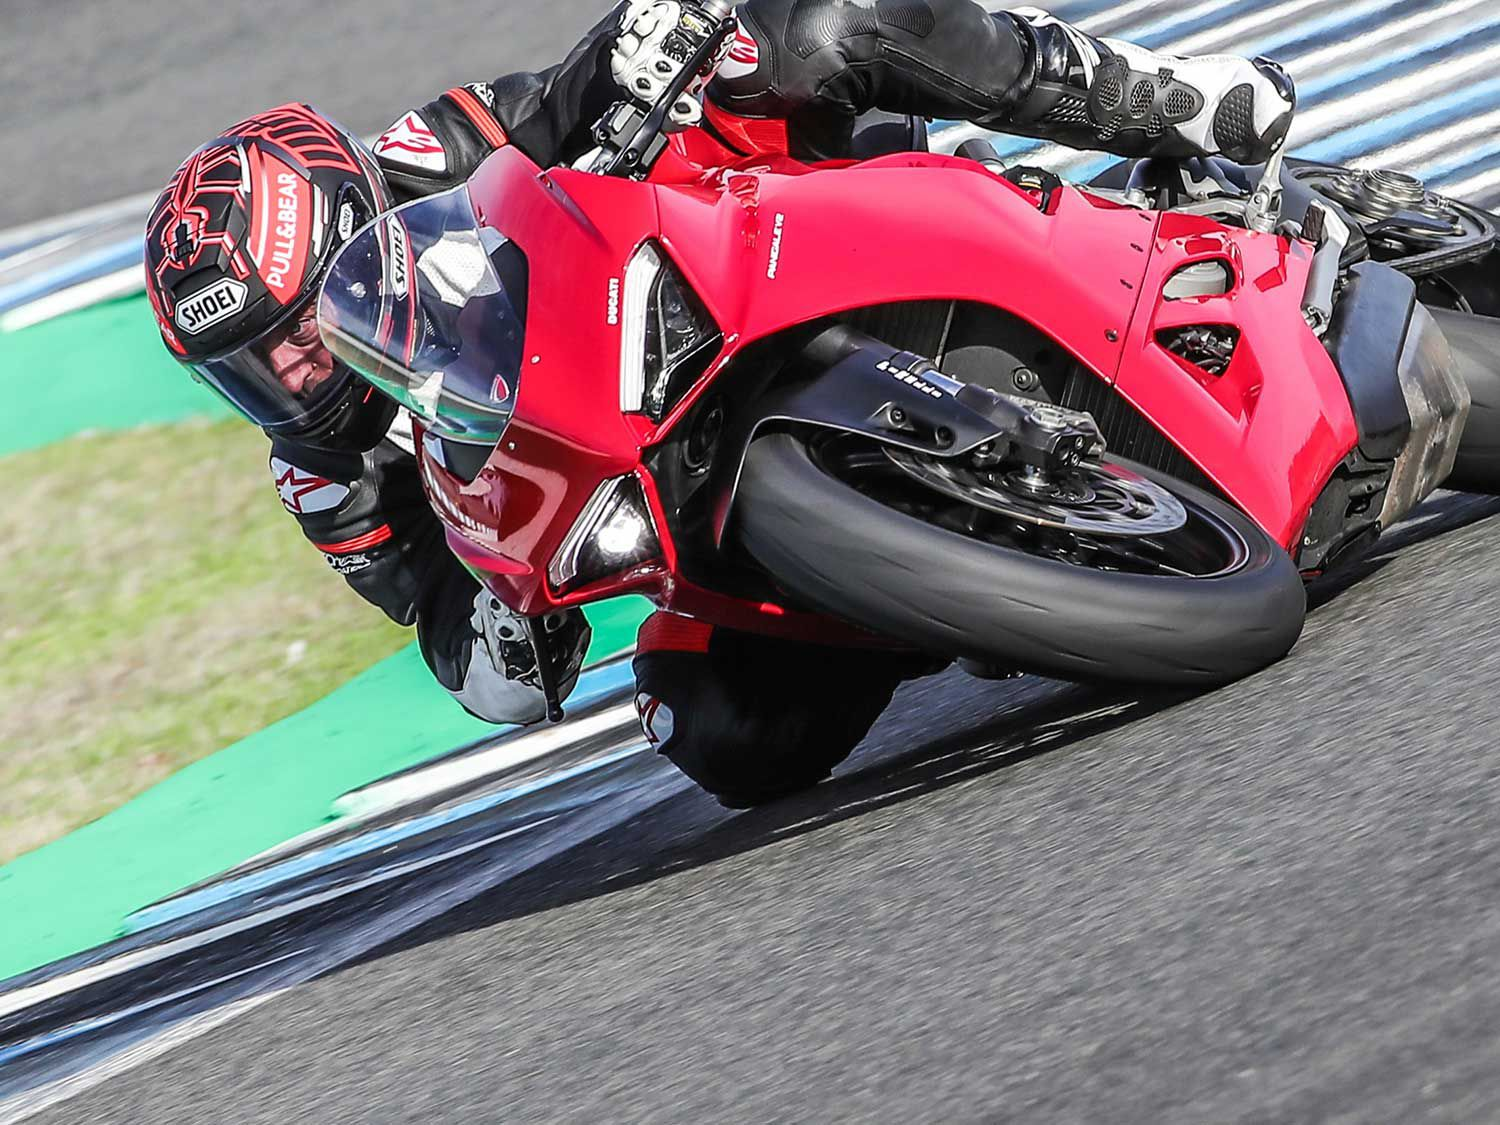 "<a  href=""https://www.motorcyclistonline.com/ducati-panigale-v2/"">The 2020 Ducati Panigale V2 Is Better Than The Panigale 959</a>"